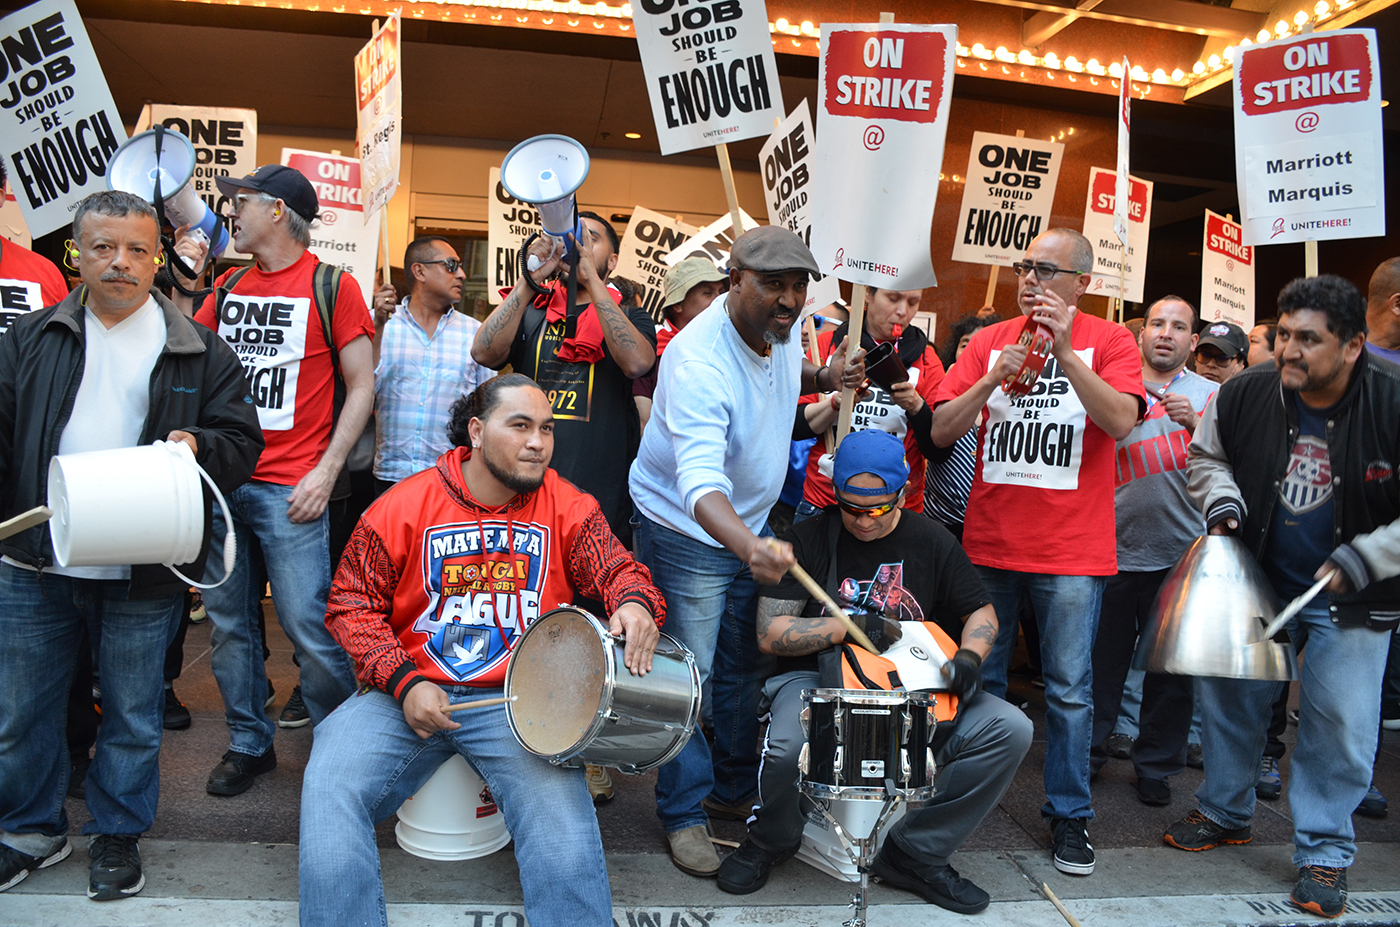 Contract victory for San Francisco hotel workers